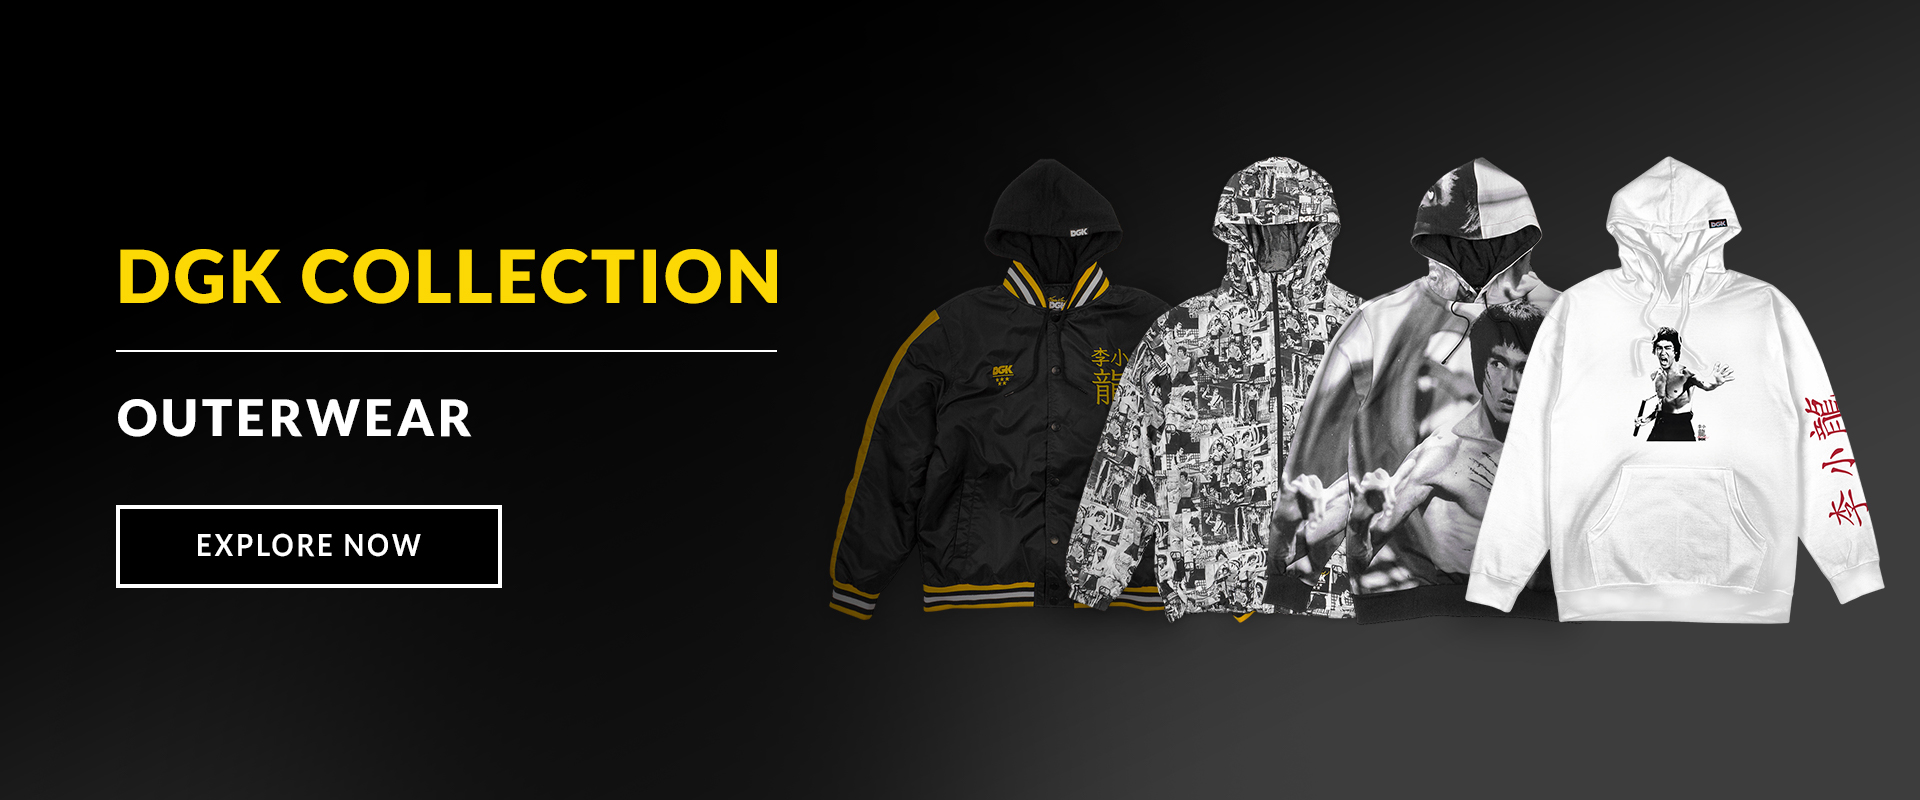 Bruce Lee DGK Collaboration